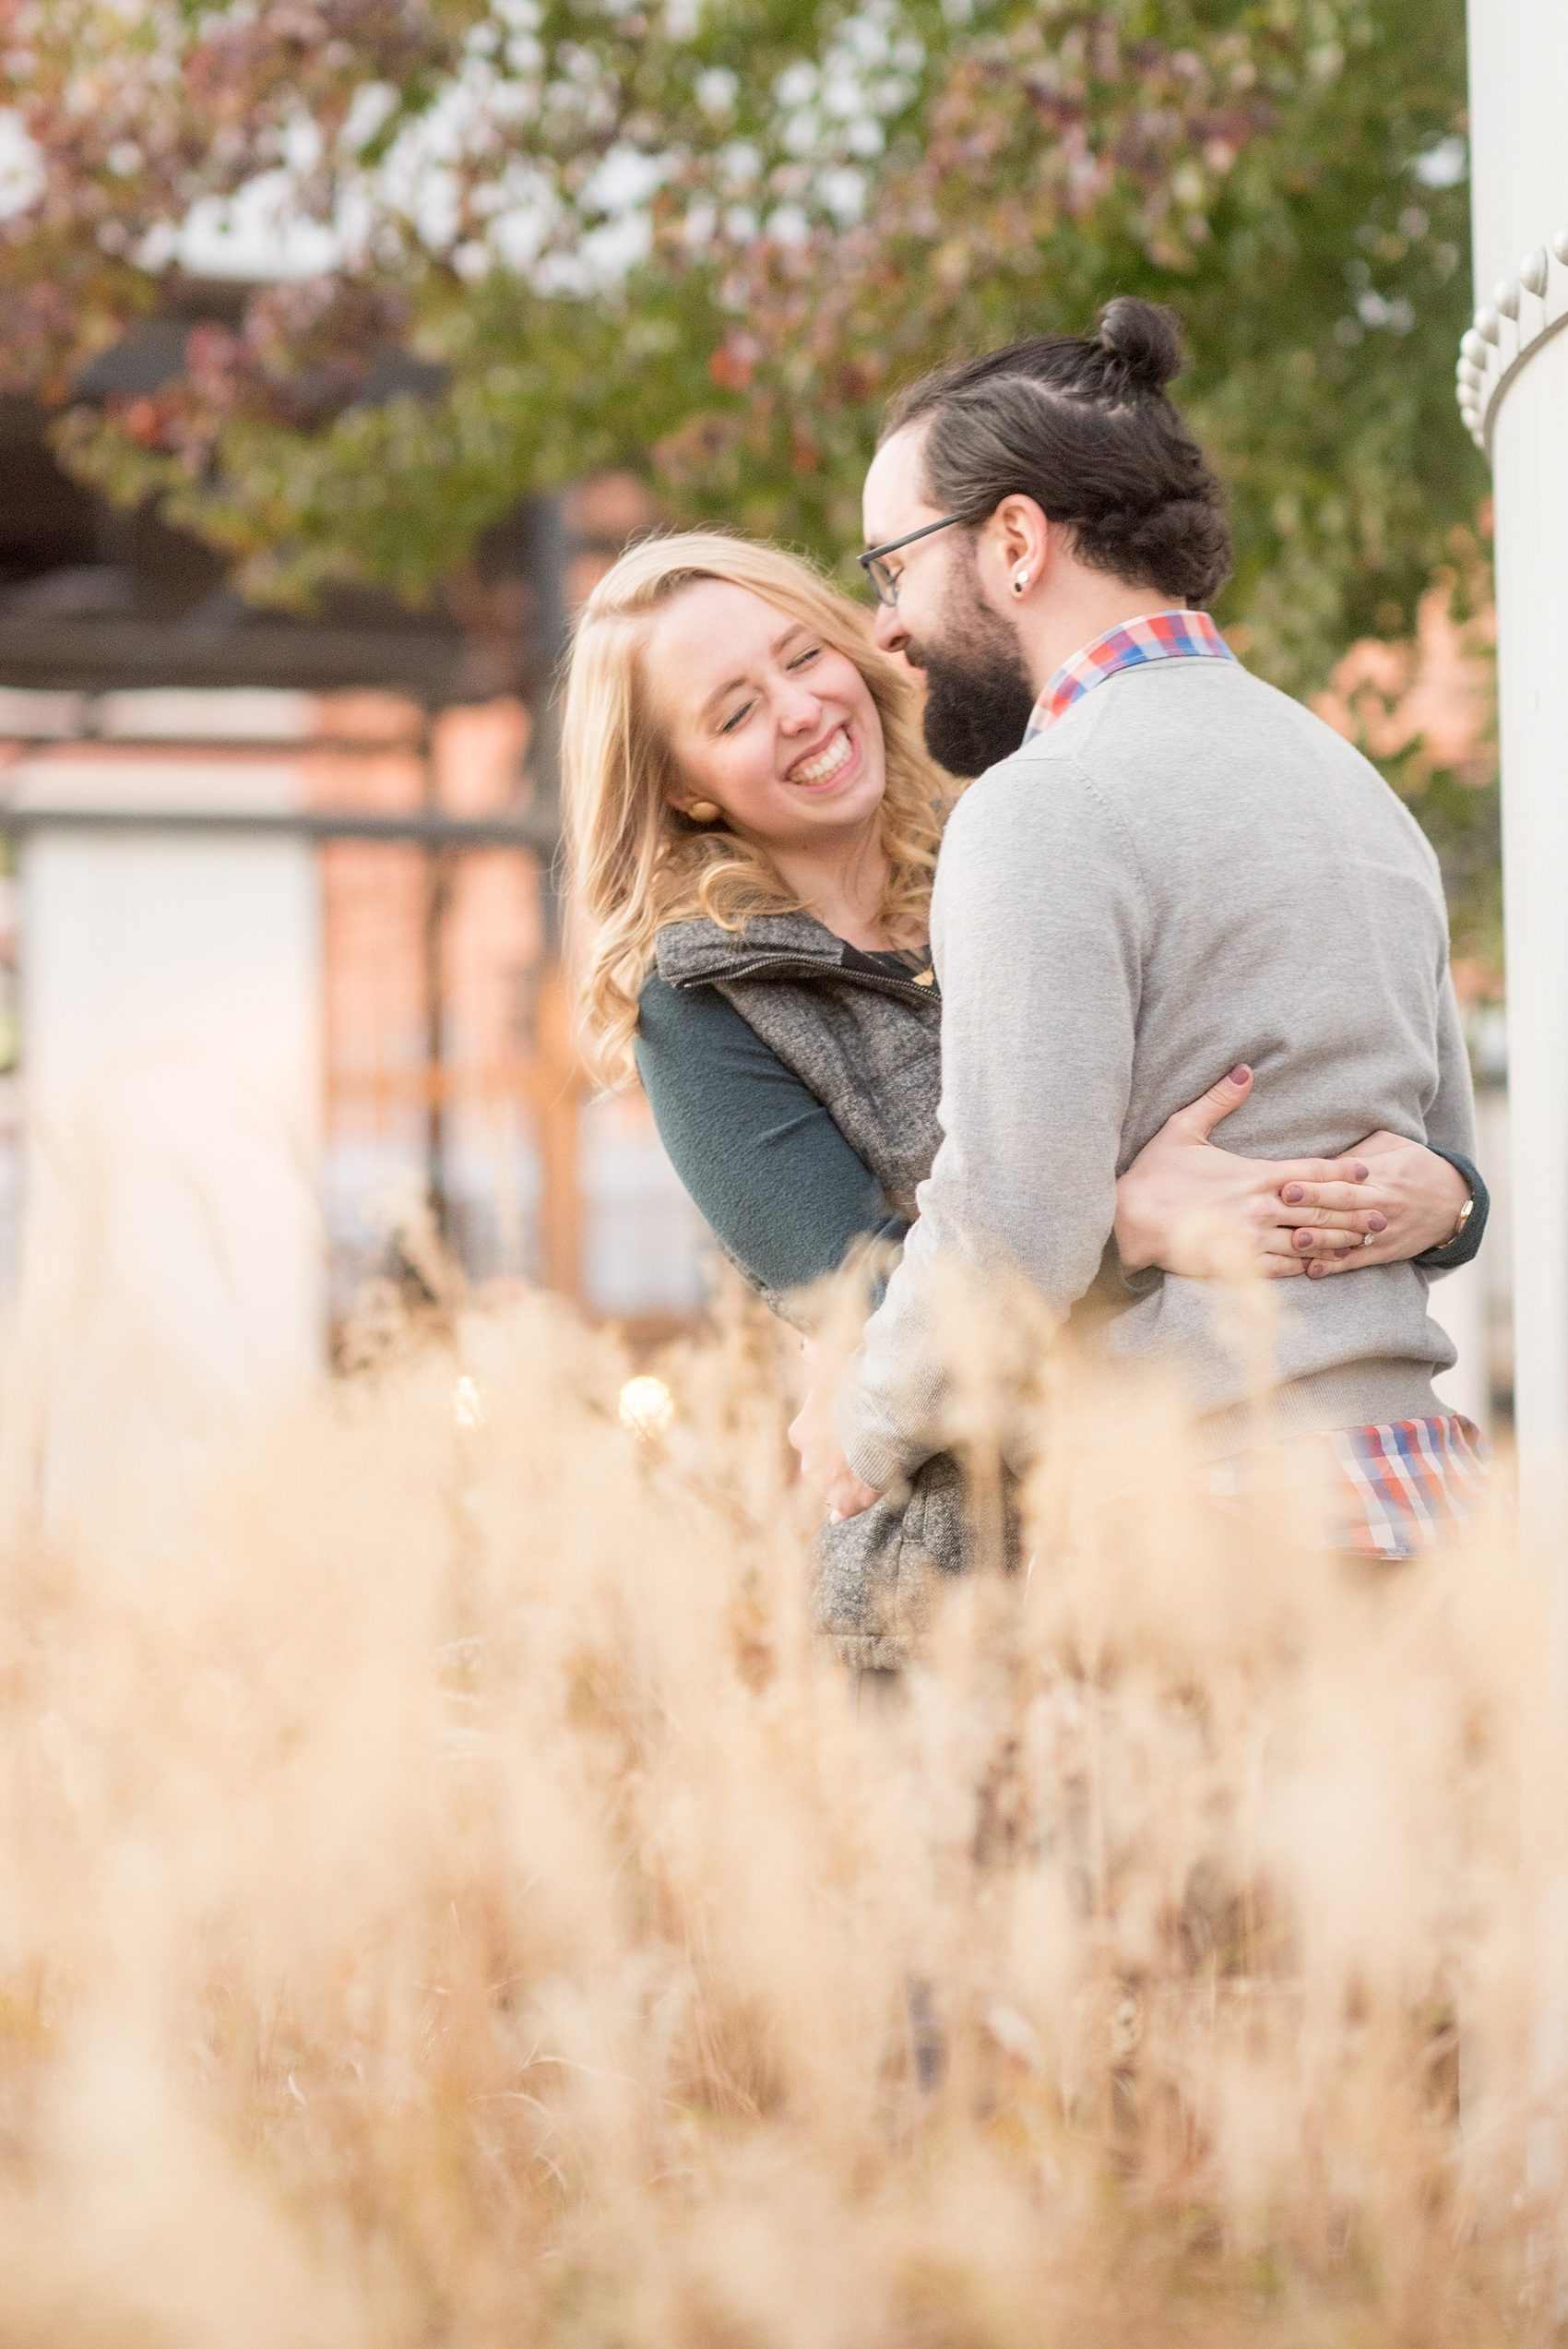 Mikkel Paige Photography photos of a Durham engagement session in downtown Durham. The bride and groom got cozy at American Tobacco Campus in this picture amongst the grasses.